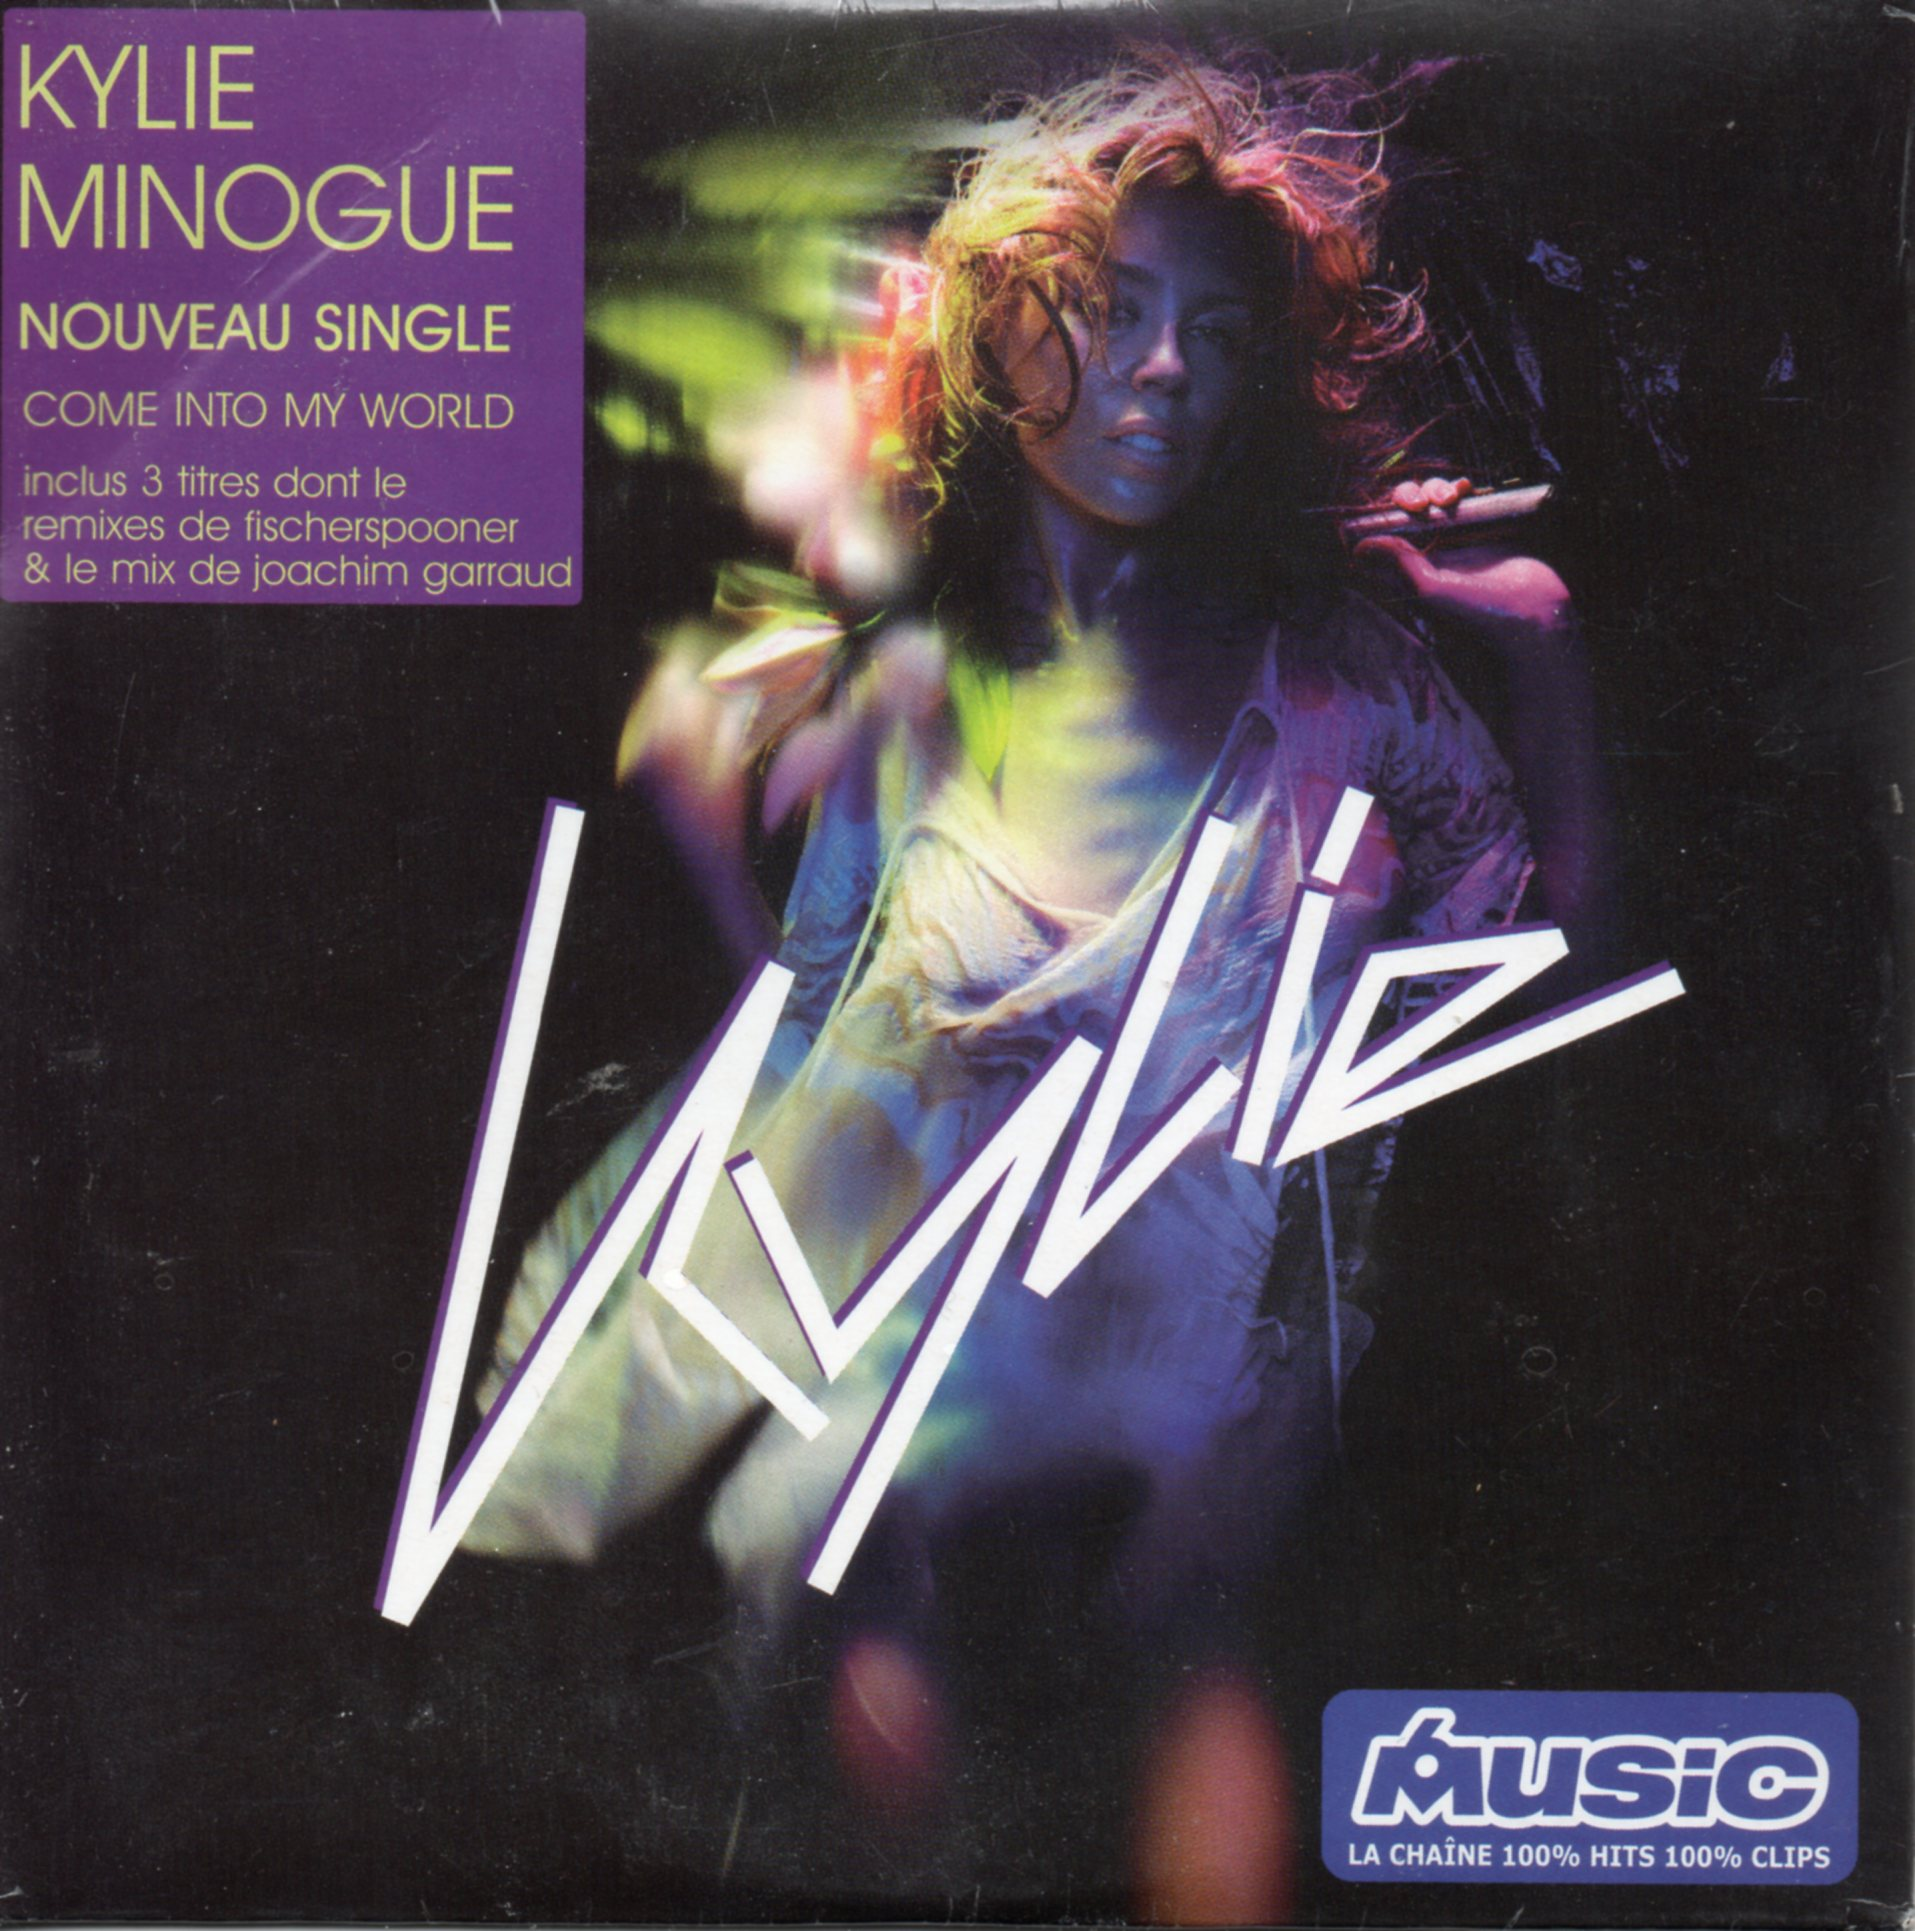 KYLIE MINOGUE - Come into my world 3-Track card sleeve - CD single